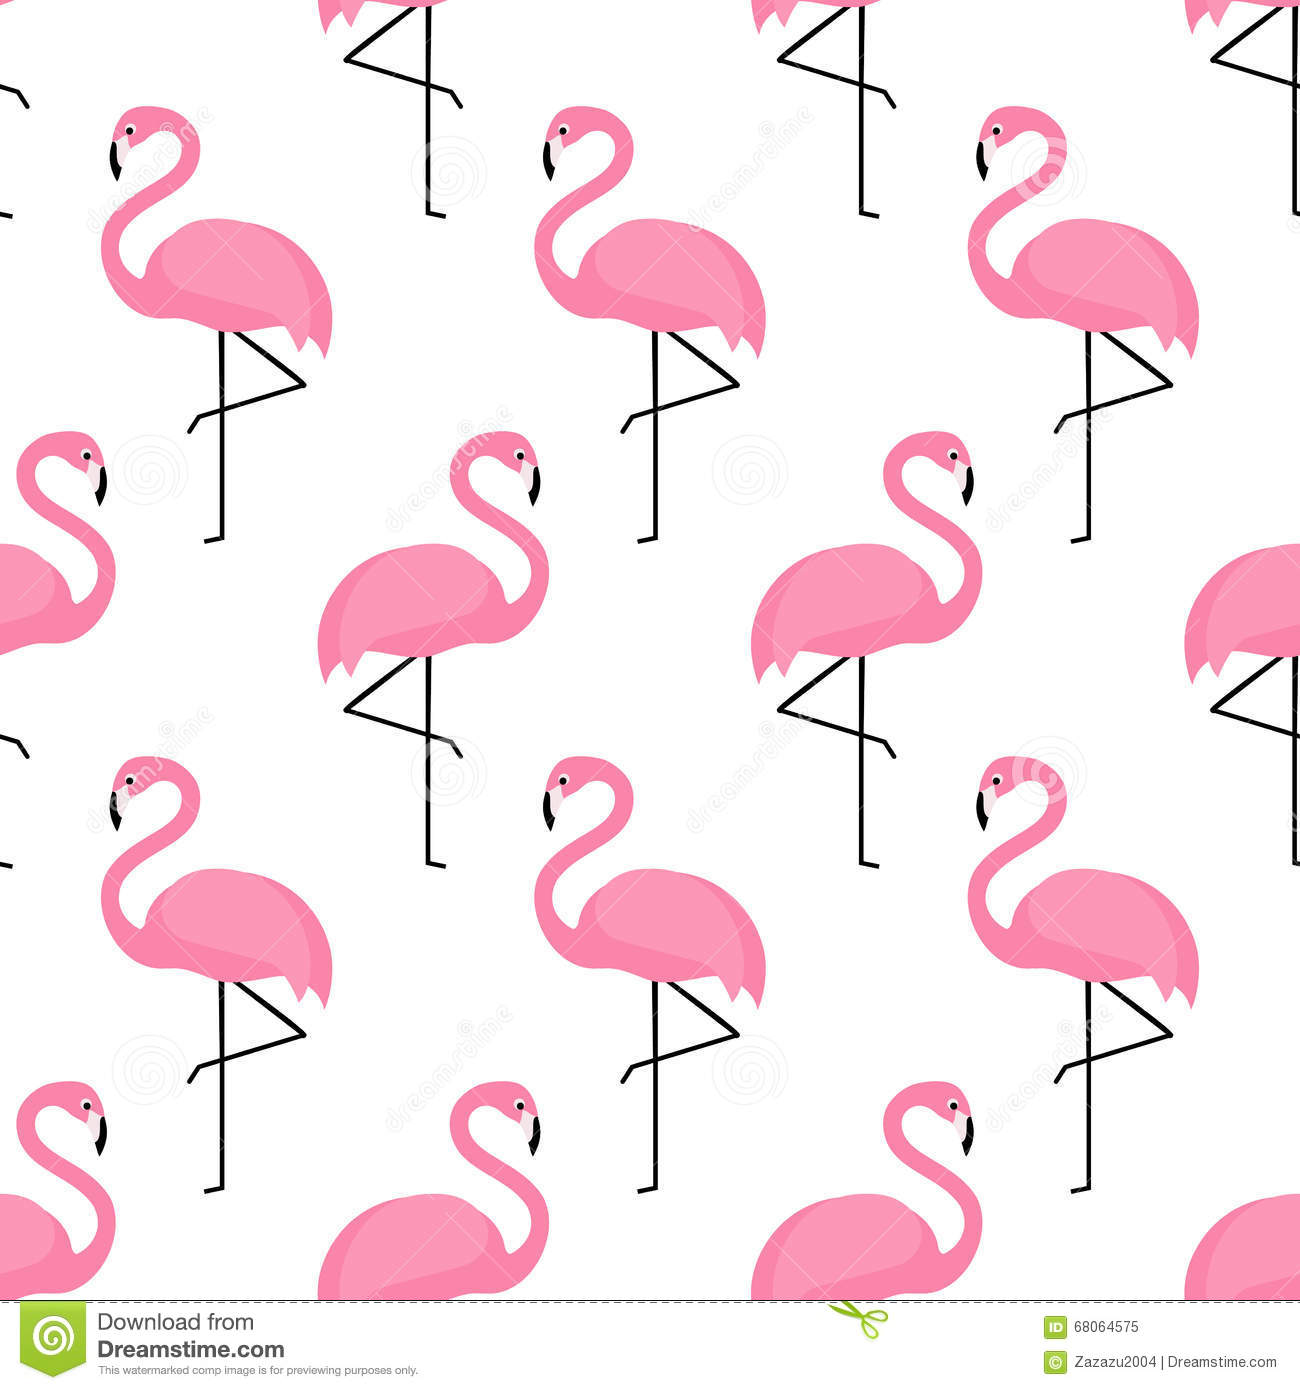 Cute Panda Iphone Wallpapers Flamingo Seamless Pattern On White Background Stock